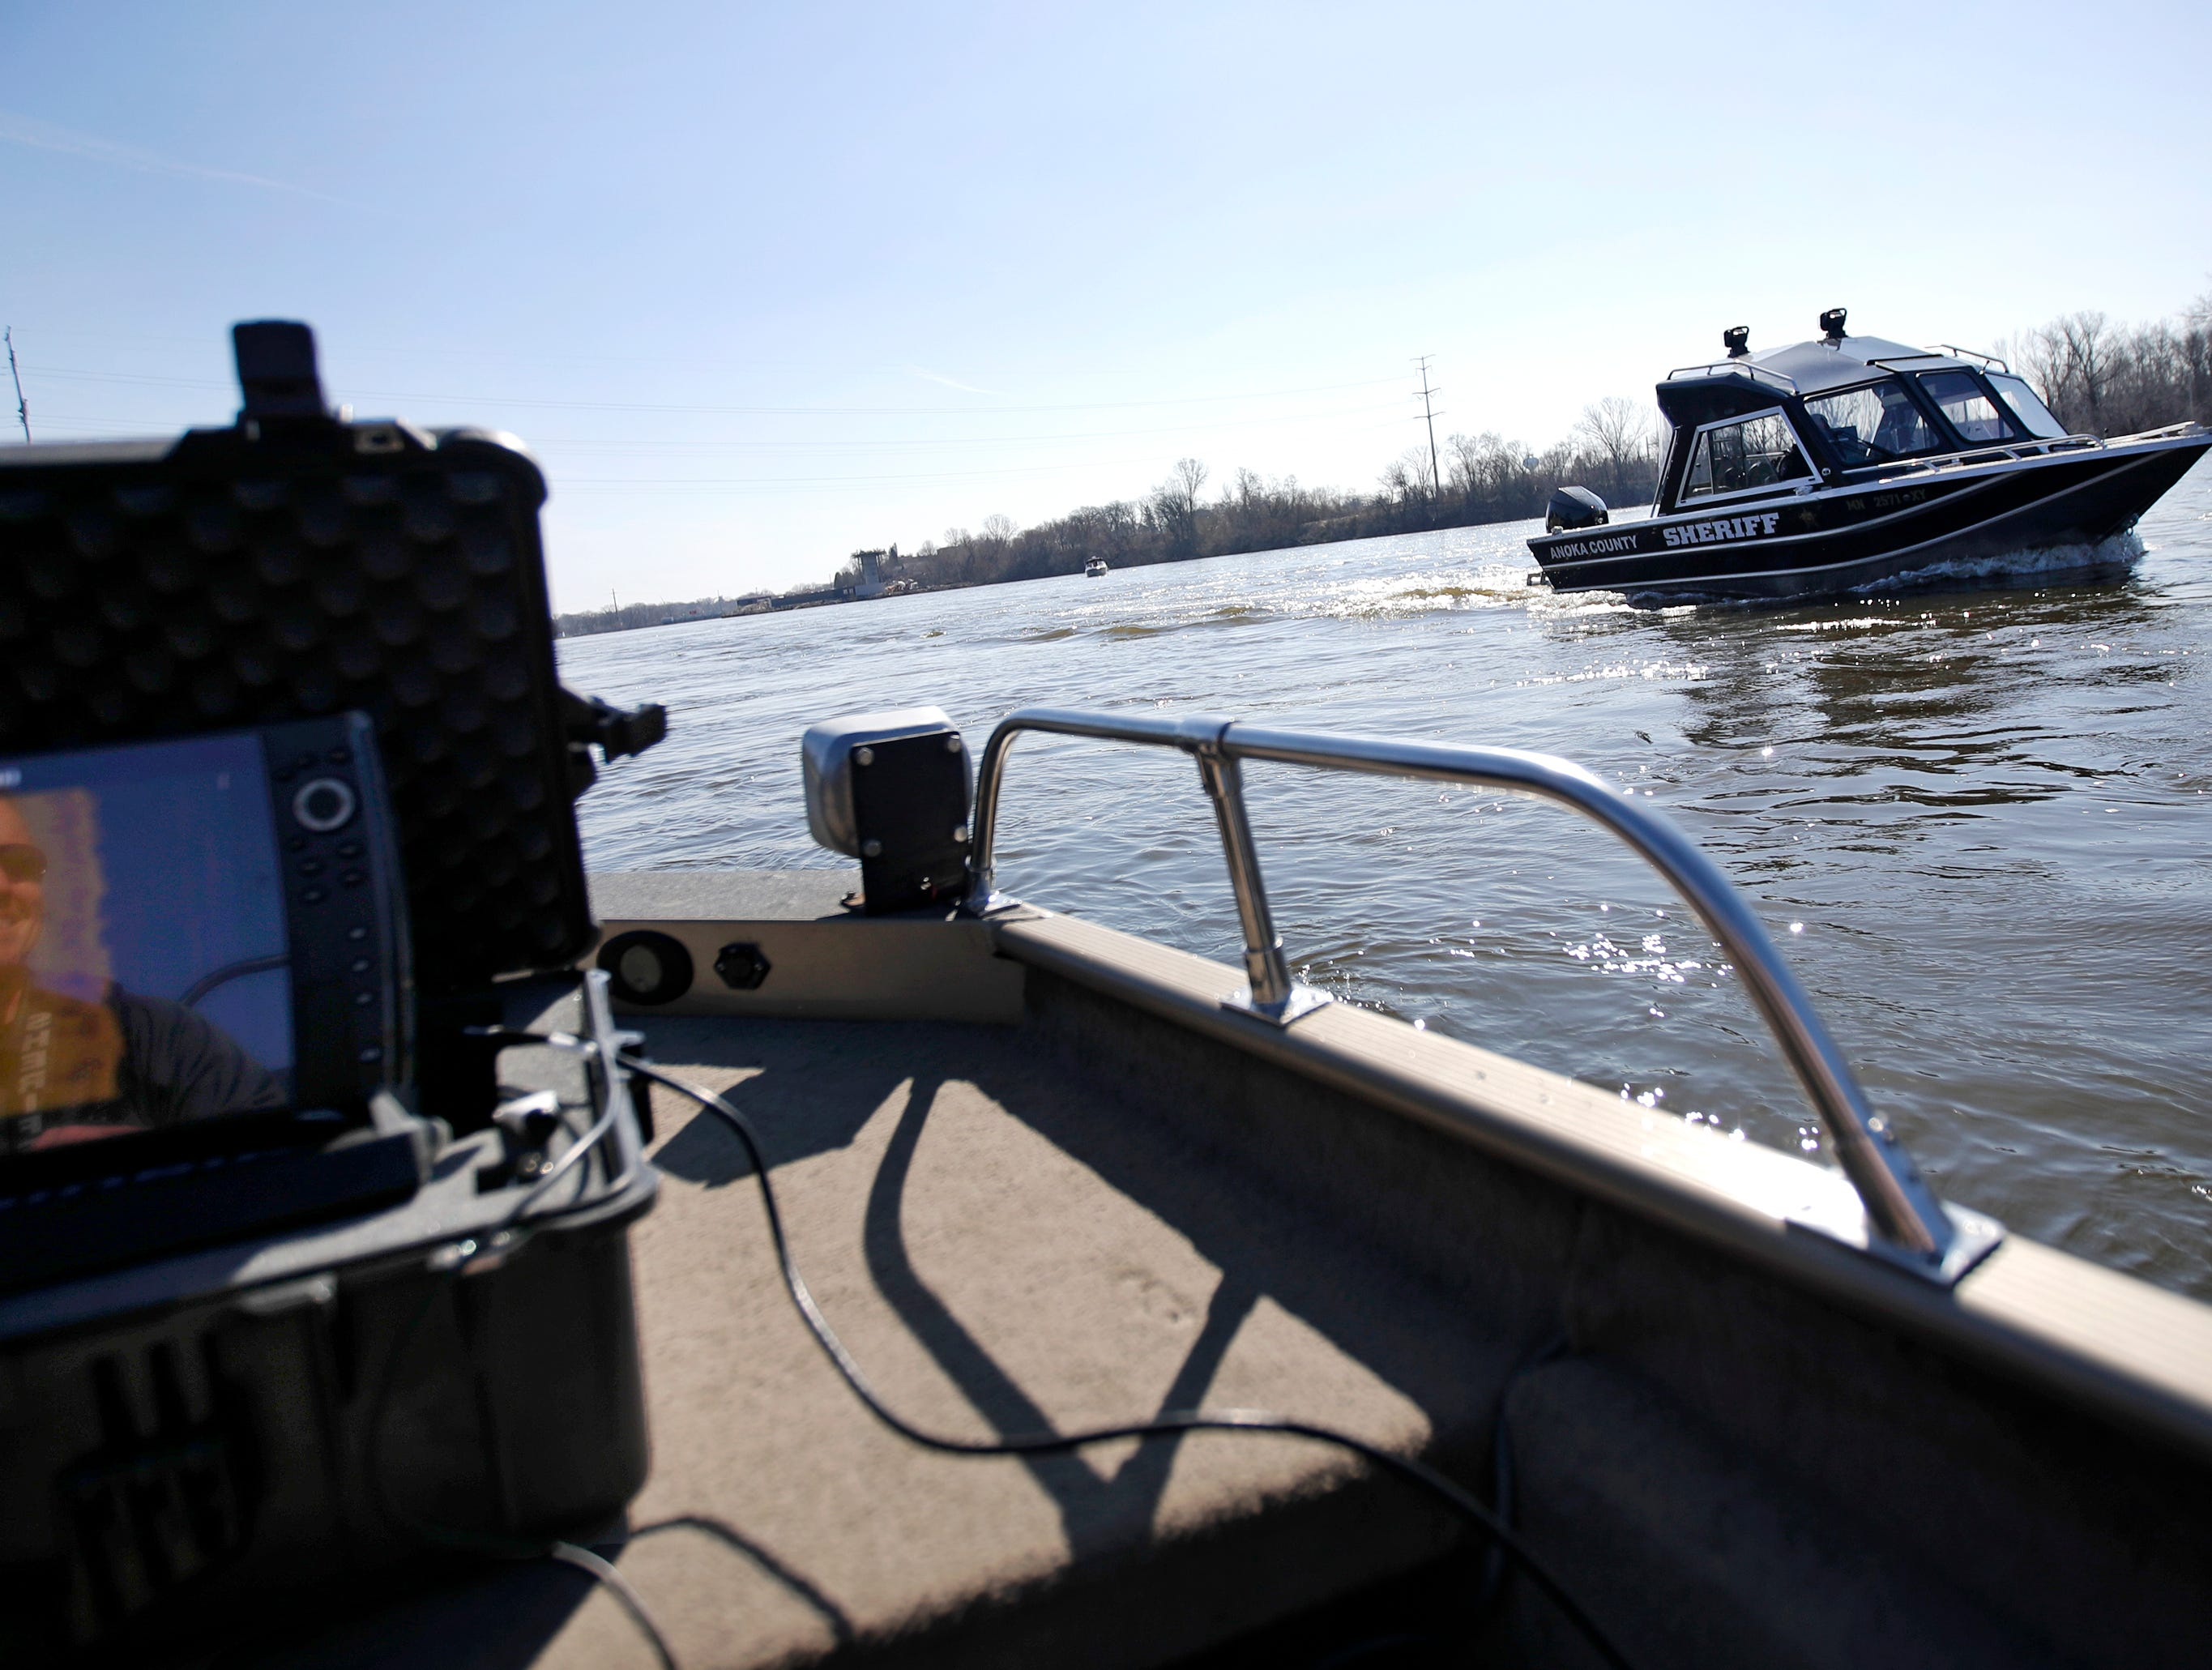 Outagamie County Sheriff's Deputy Mike Duven is reflected in a Helix 12 sonar screen after giving a thumbs up to members of the Anoka County Sheriff's Department as they pass by during training for boat sonar operations, search patterns and techniques Wednesday, April 24, 2019, on the Fox River in Kimberly, Wis. Sonar can be used in search and rescue operations as well as evidence recovery. The training involved agencies from Beaver Dam, Portage County, the Wisconsin DNR, Winnebago County, Wautoma, La Crosse and Anoka County, Minn.